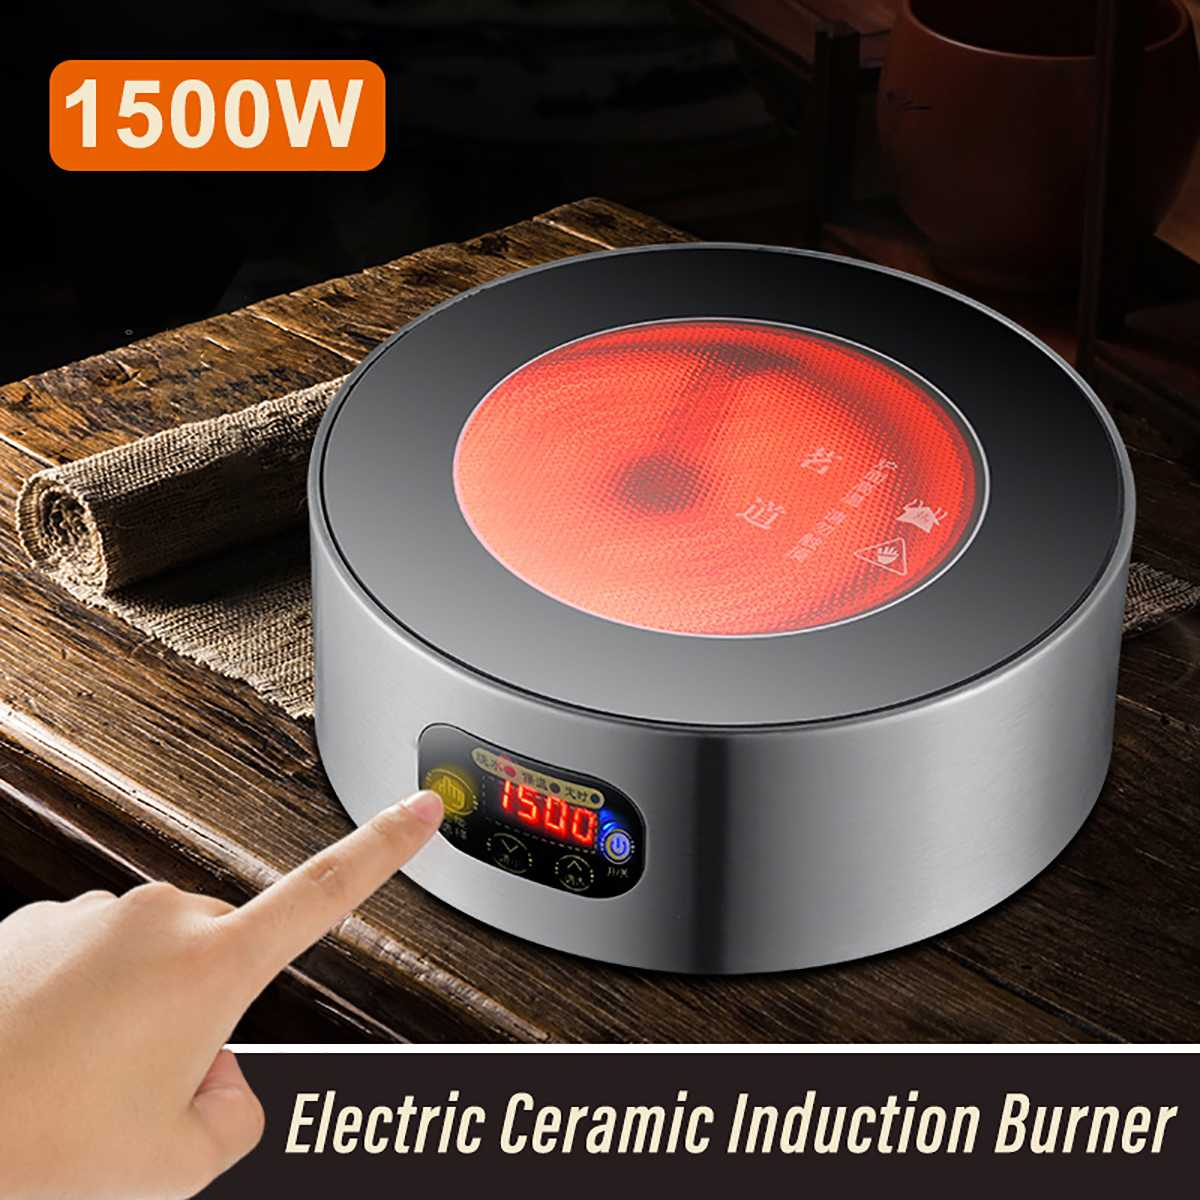 1500W No Radiation Water Boiling Induction Cooker Sensor Touch Electric Ceramic Mini Induction Cooker Cooking Teapot